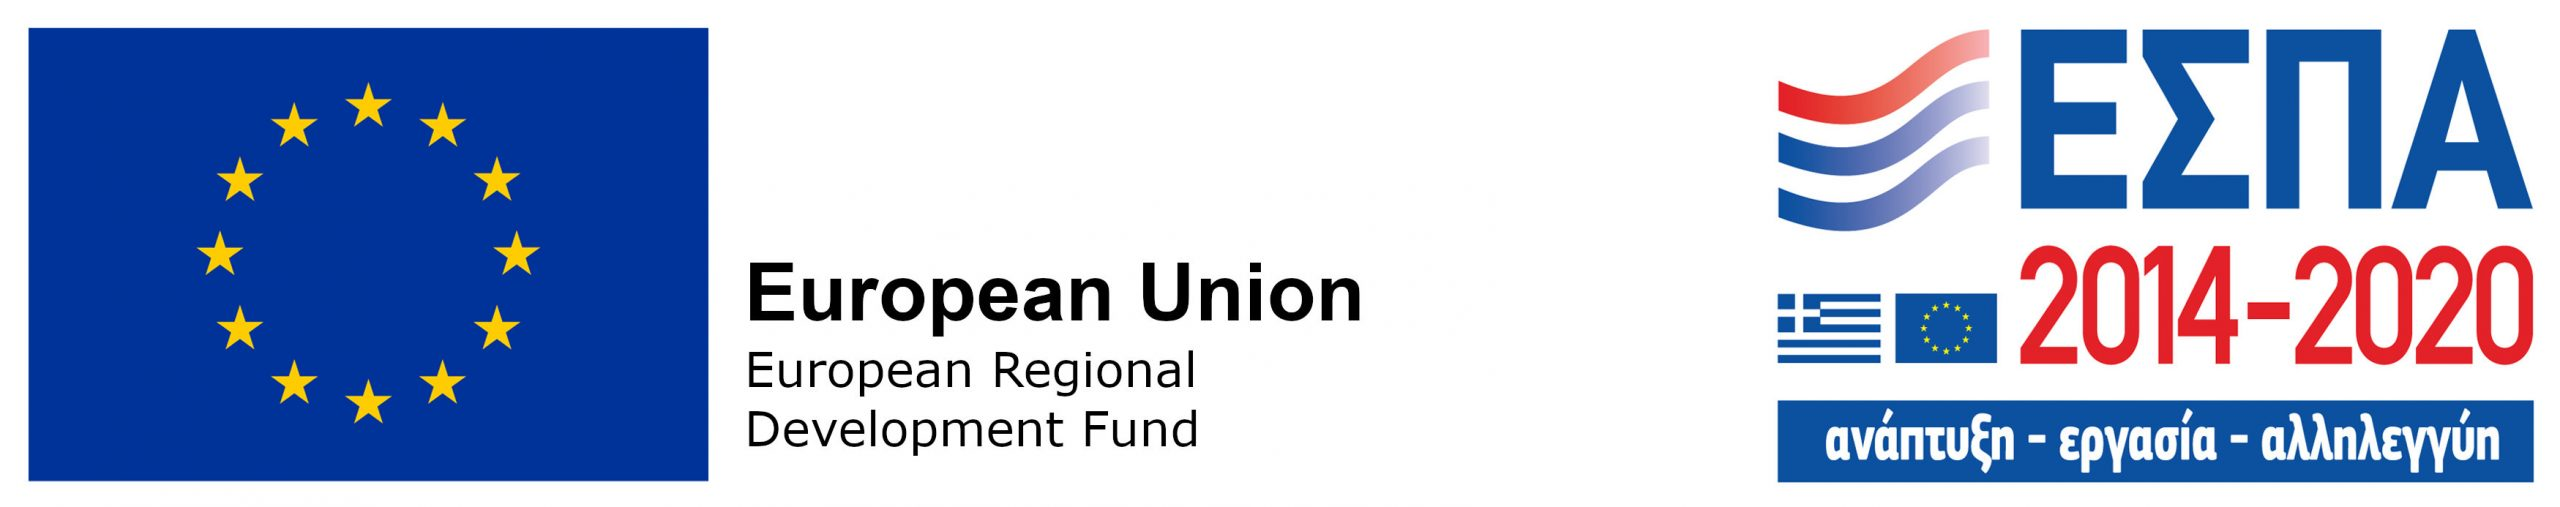 European Union Regional Development Fund Banner